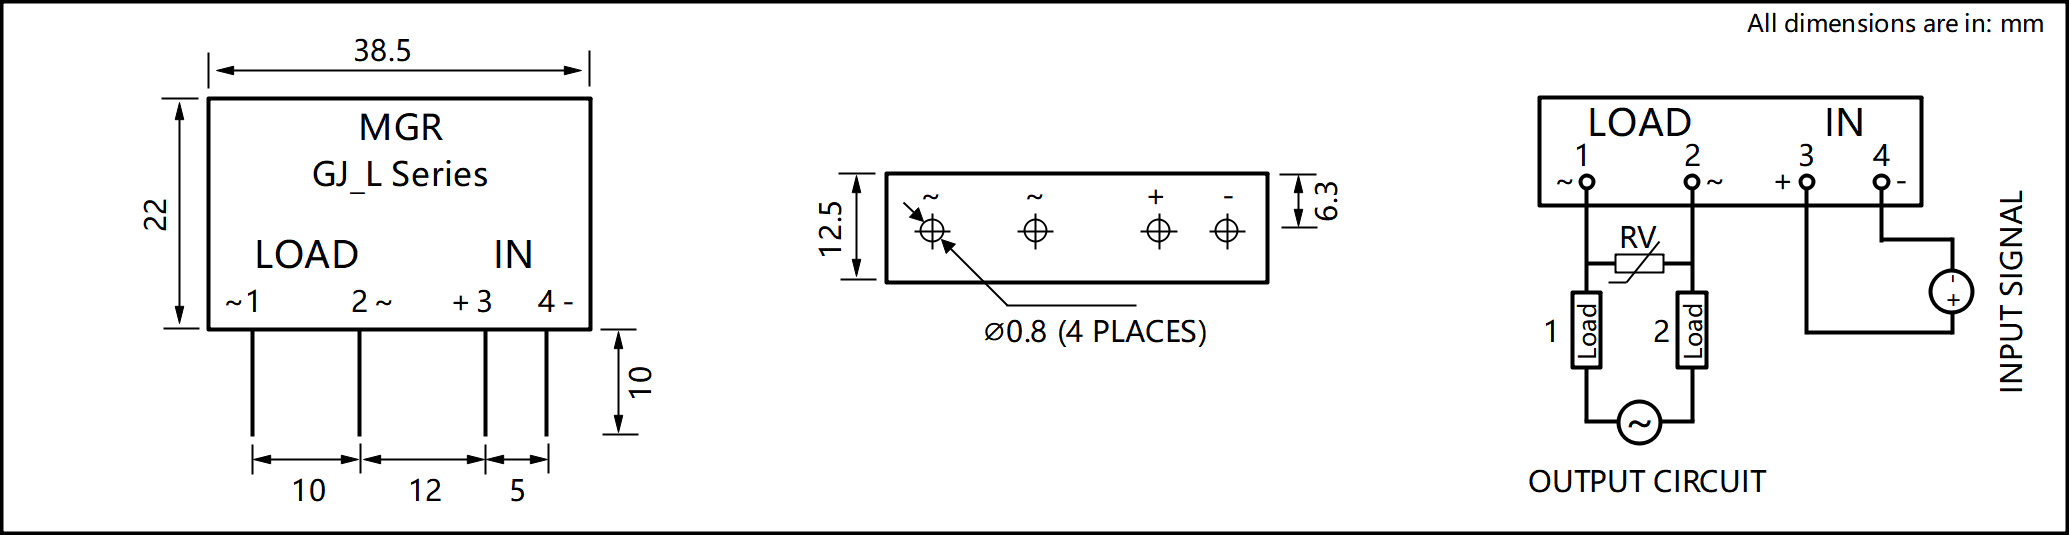 GJ_L Series PCB Mount Solid State Relay diagram